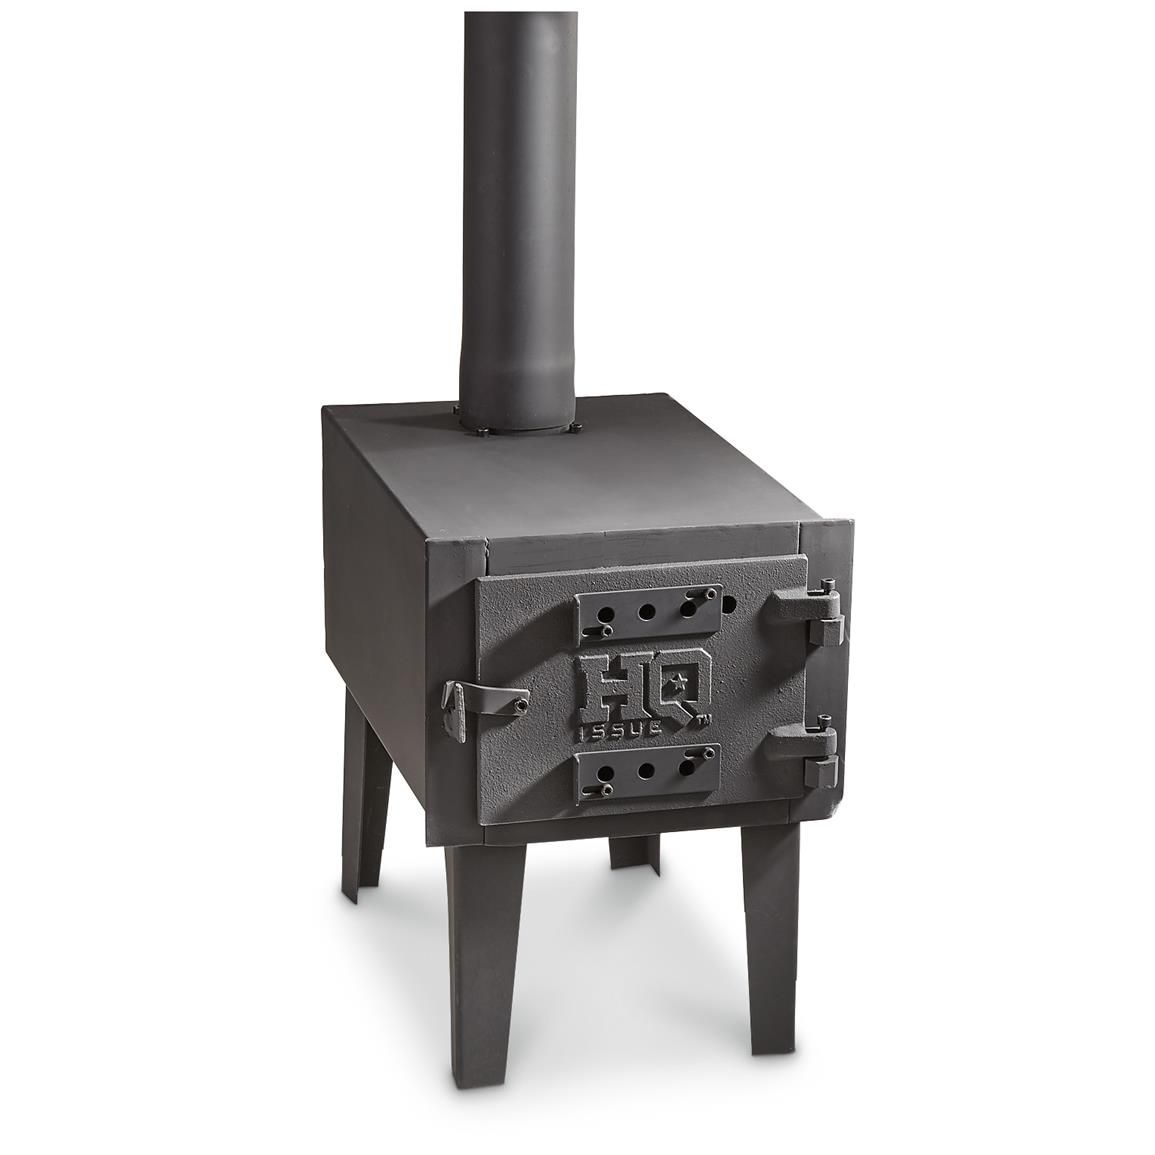 hq issue outdoor wood stove stove woods and treehouse